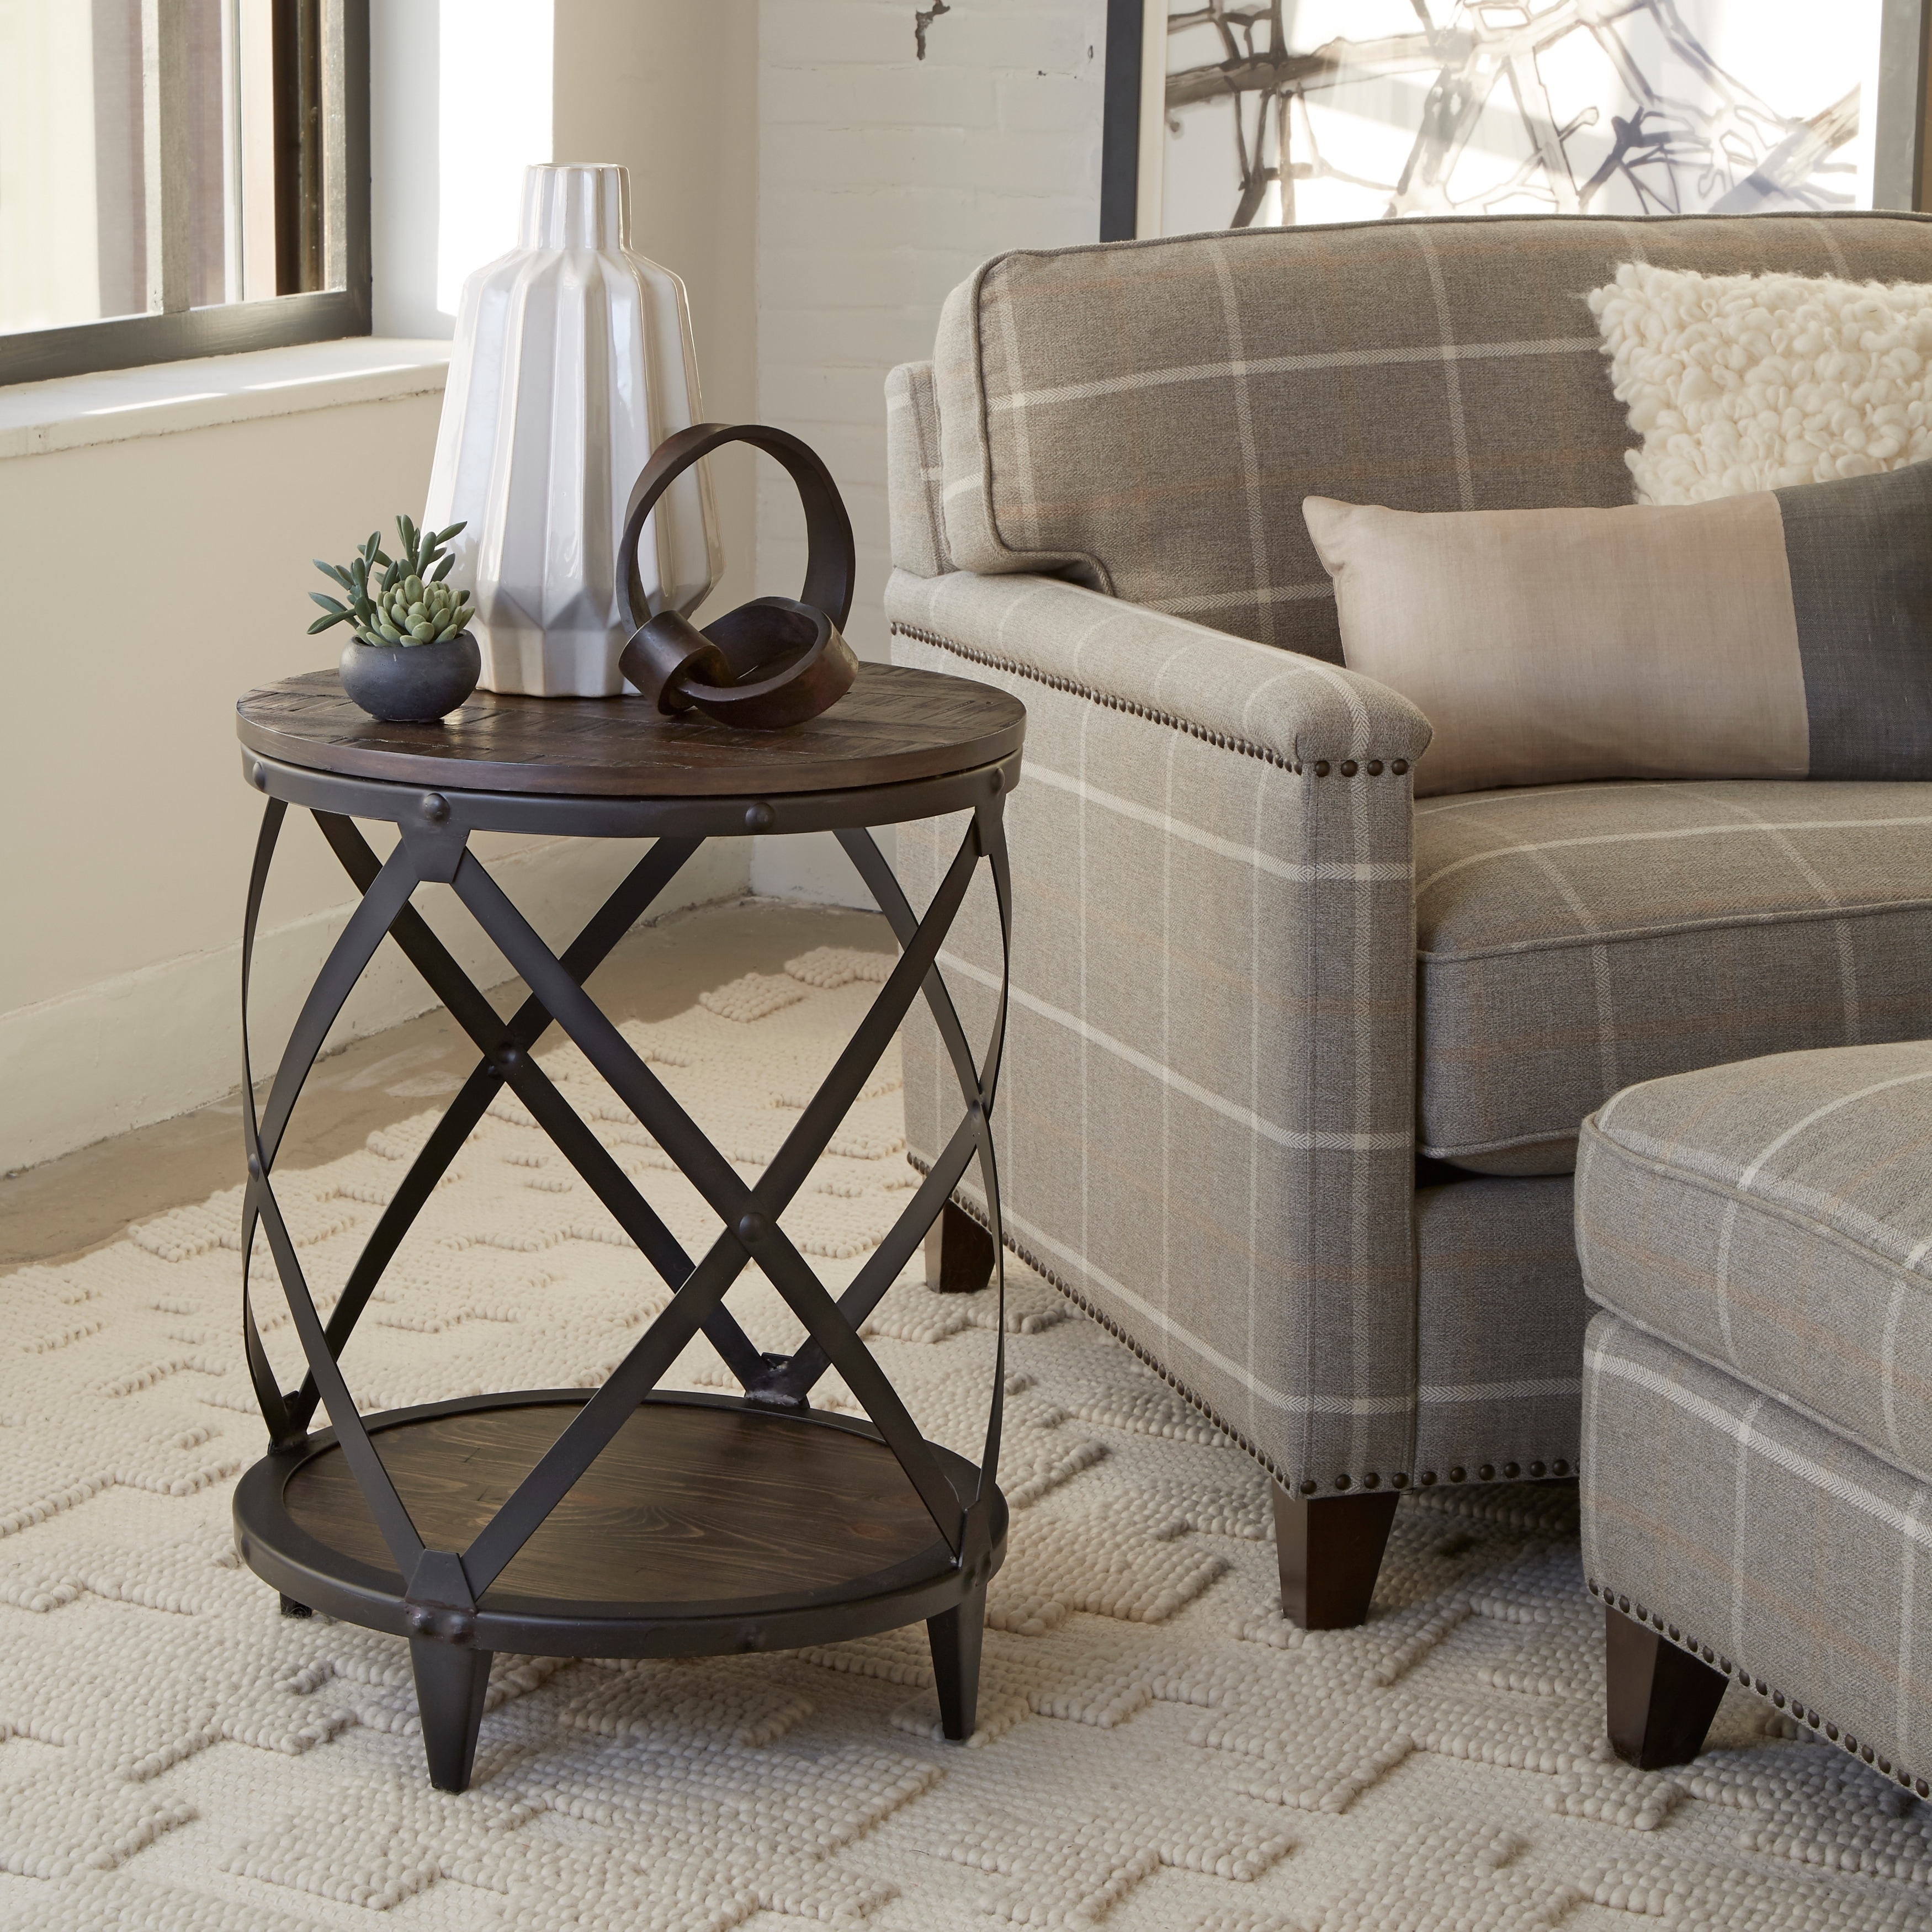 Shop milford industrial weathered charcoal wood and metal accent table on sale free shipping today overstock com 13321548